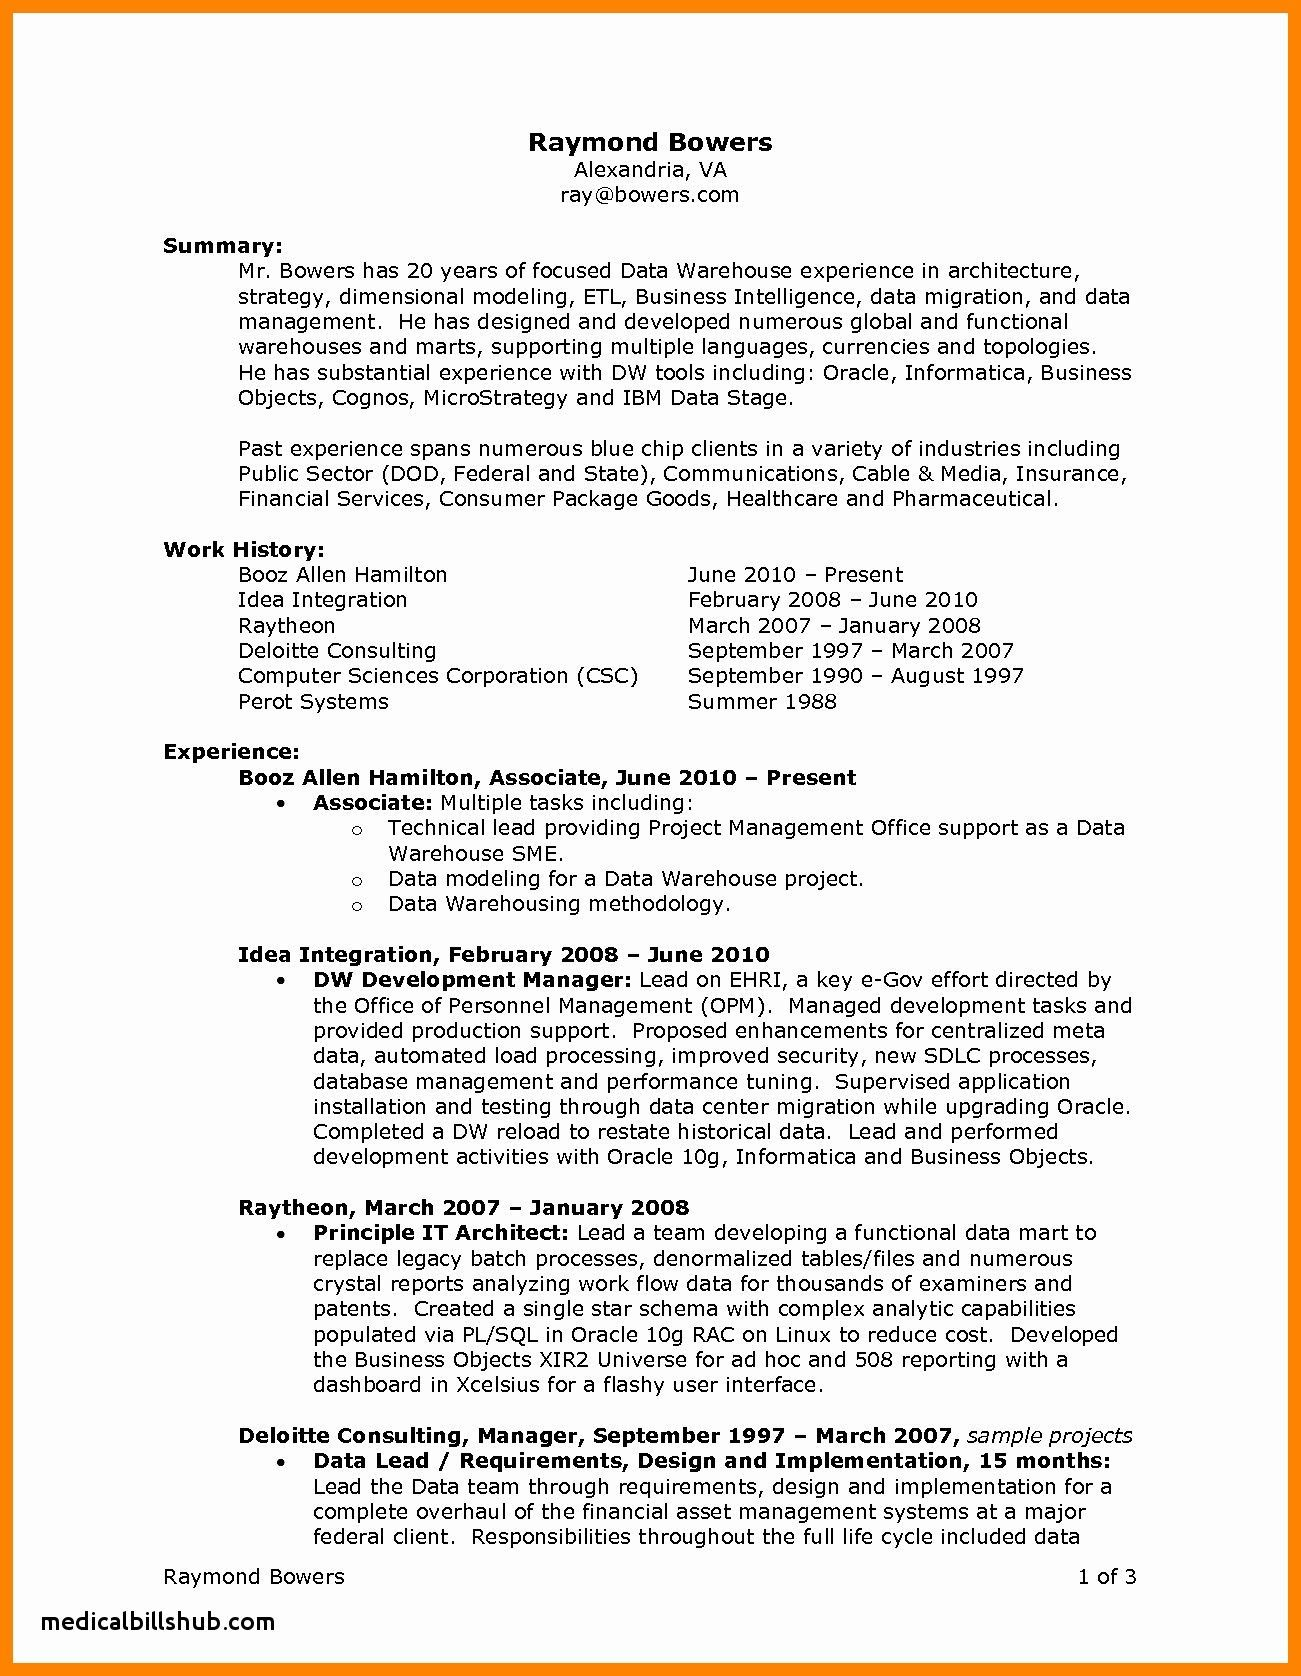 pin on phd resume with statement of purpose payroll coordinator abiword template living Resume Resume With Statement Of Purpose